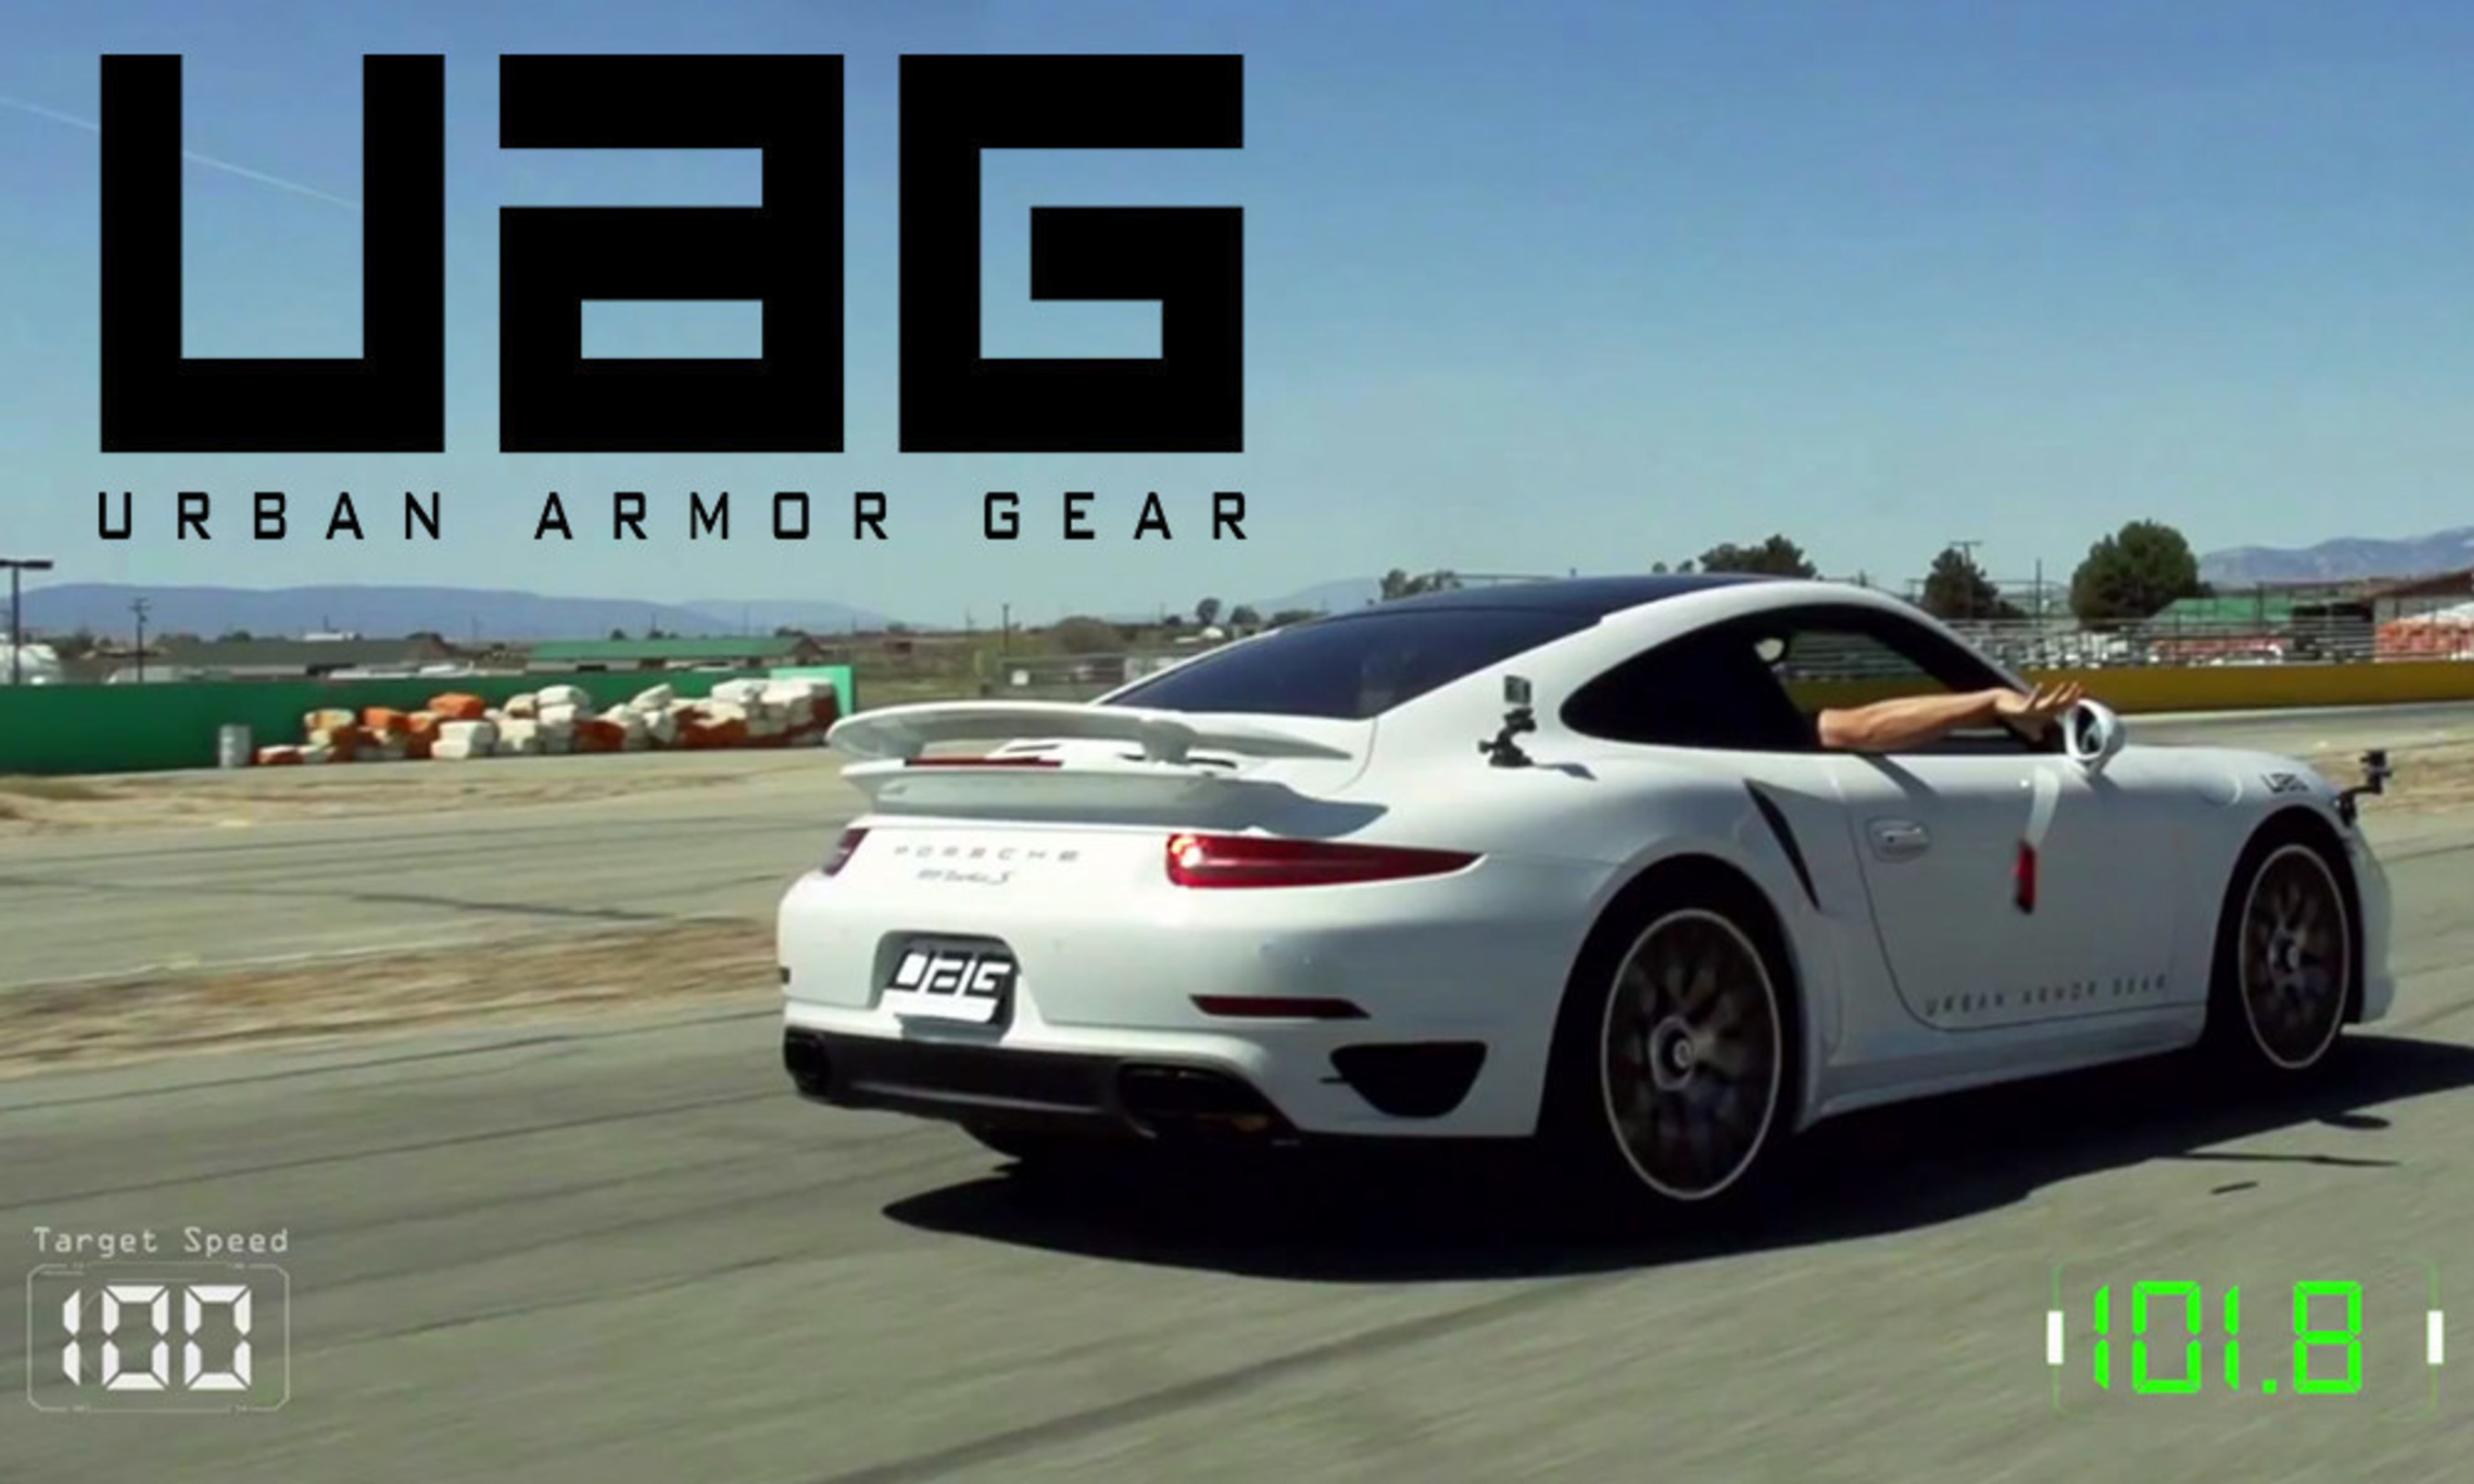 Urban Armor Gear Drops An iPhone 6 From A Moving Vehicle Testing The Laws Of Physics